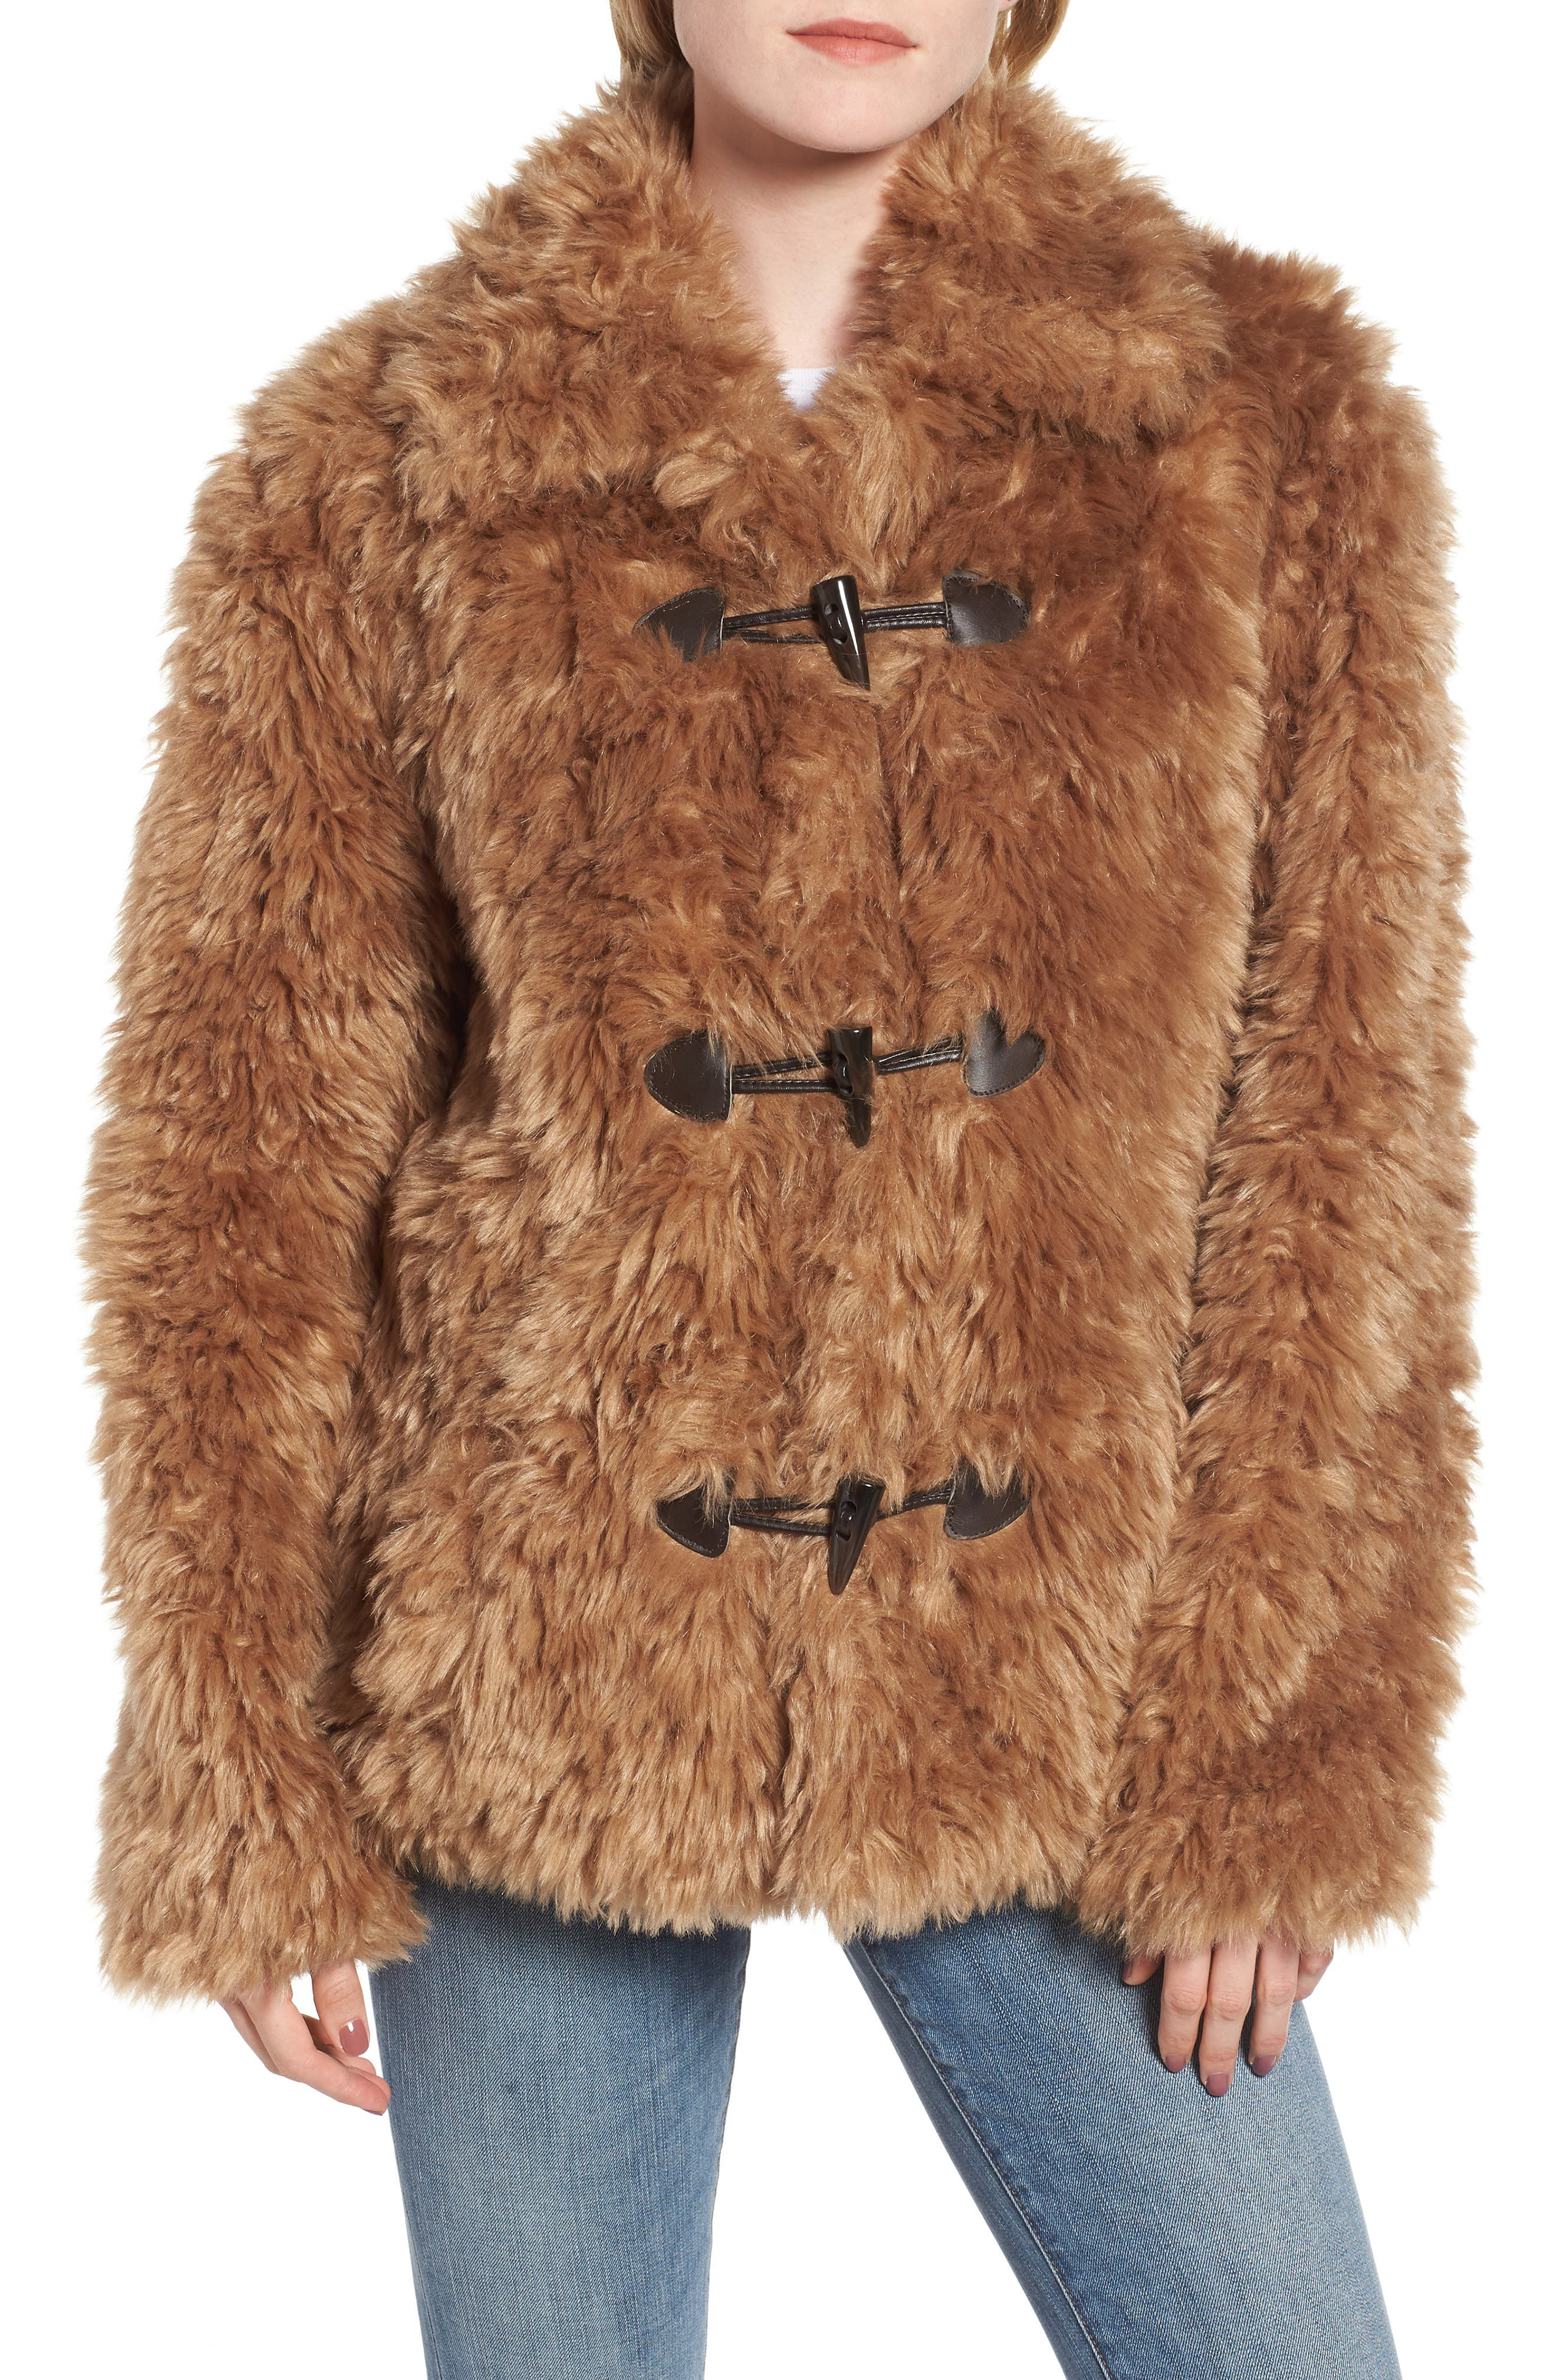 Faux Fur Teddy Coat,                             Alternate thumbnail 4, color,                             260